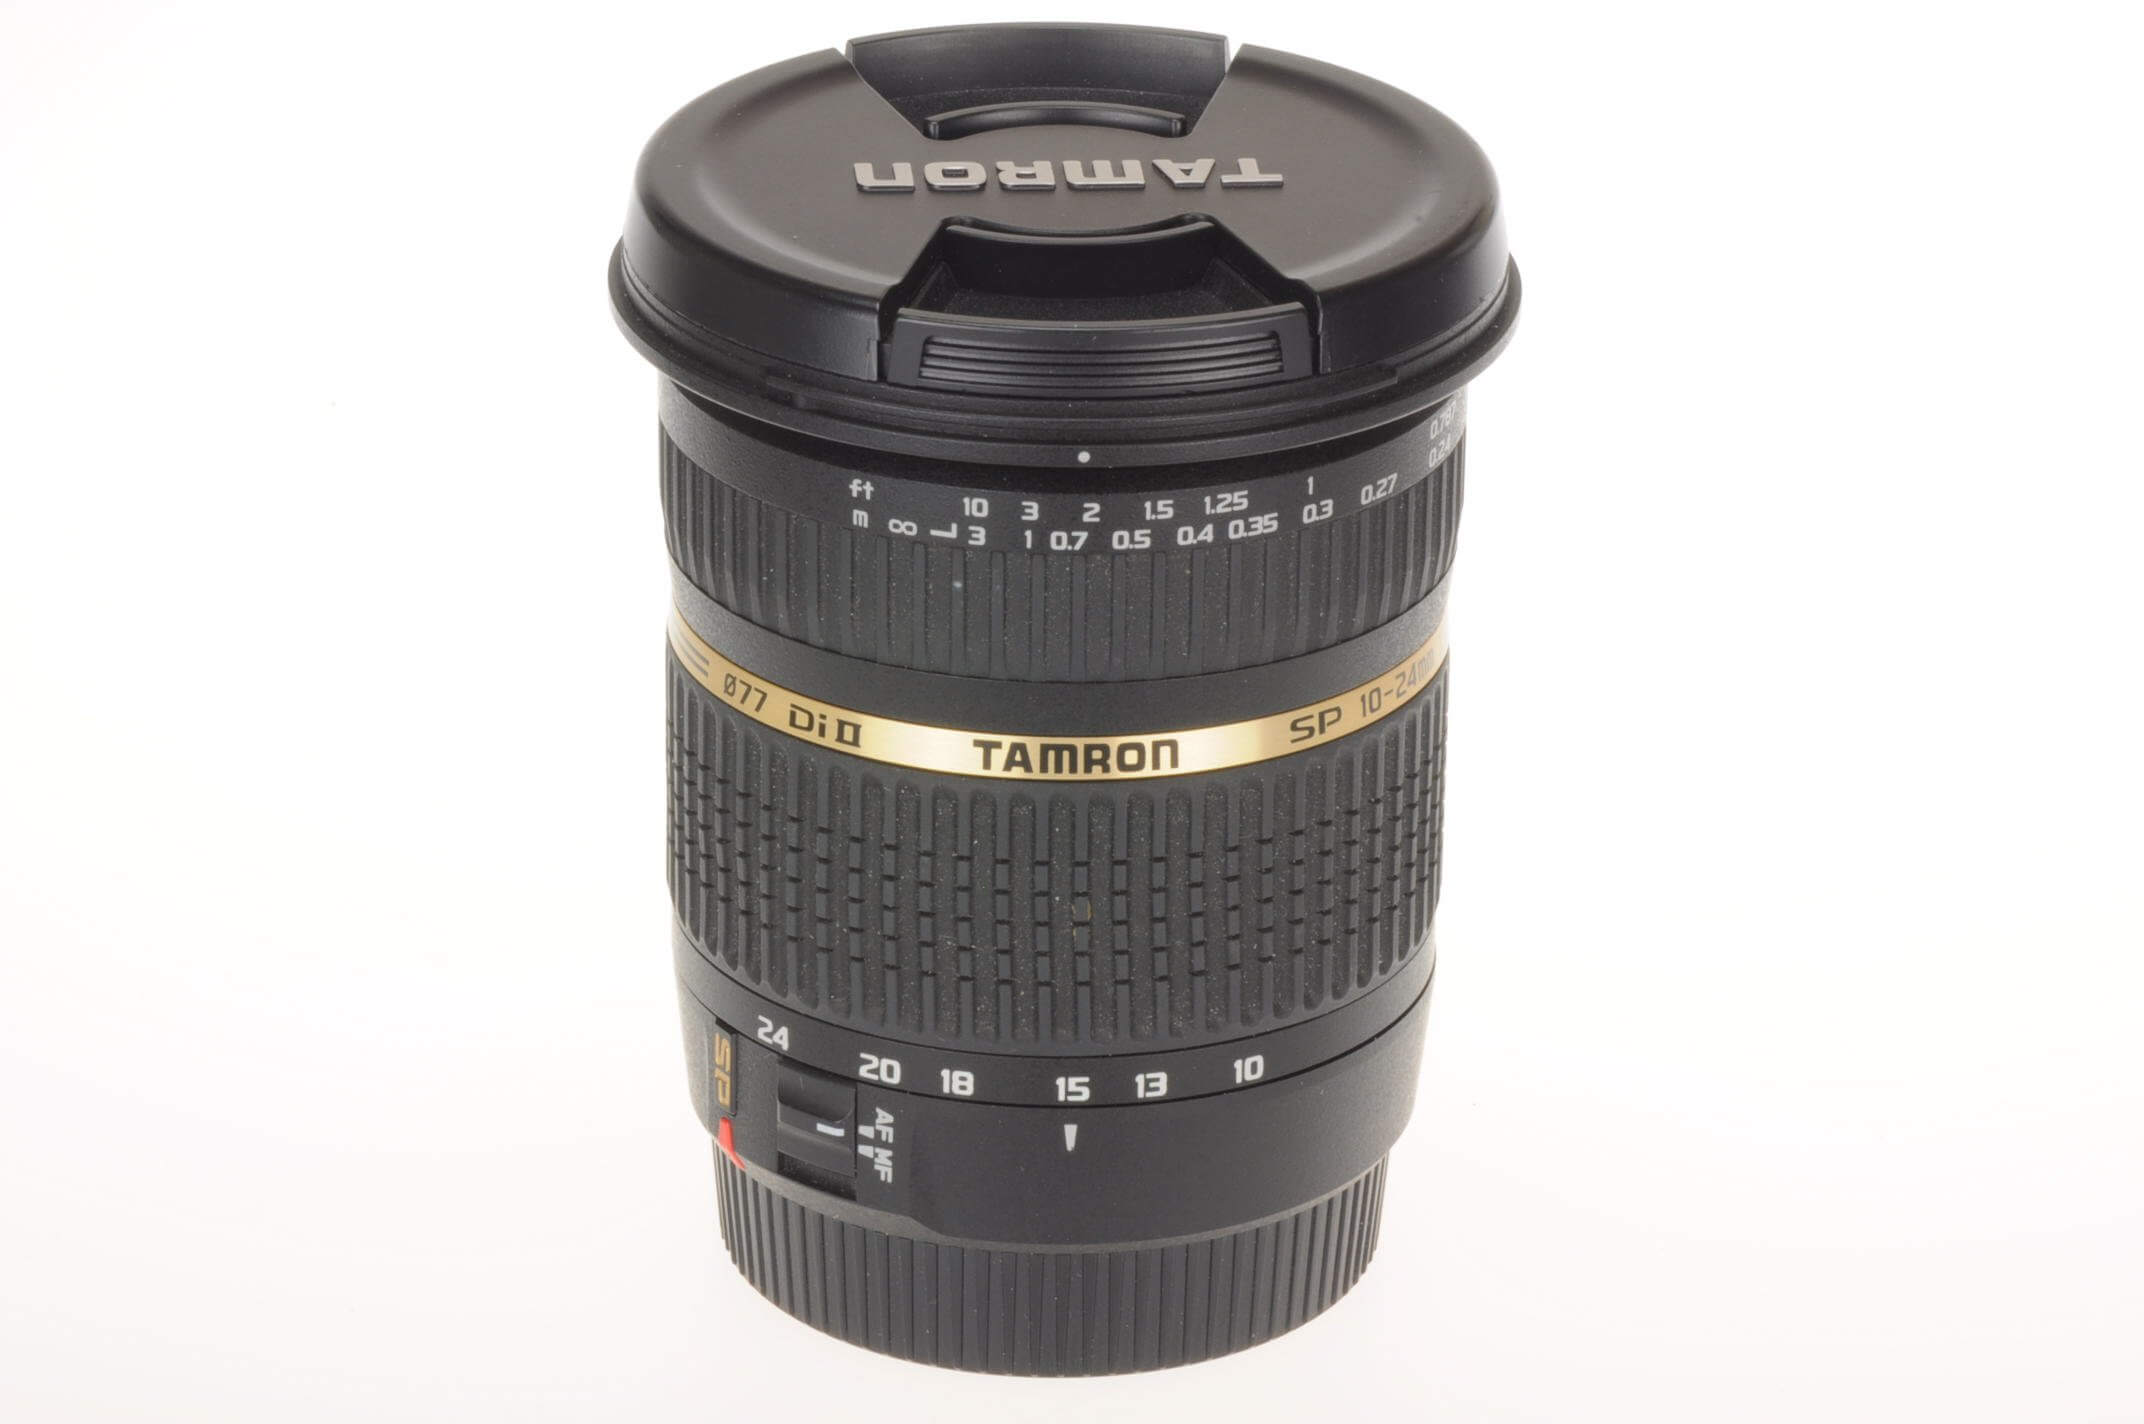 Tamron 10-24mm f3.5-4.5 Di II lens, Canon mount, Mint condition!